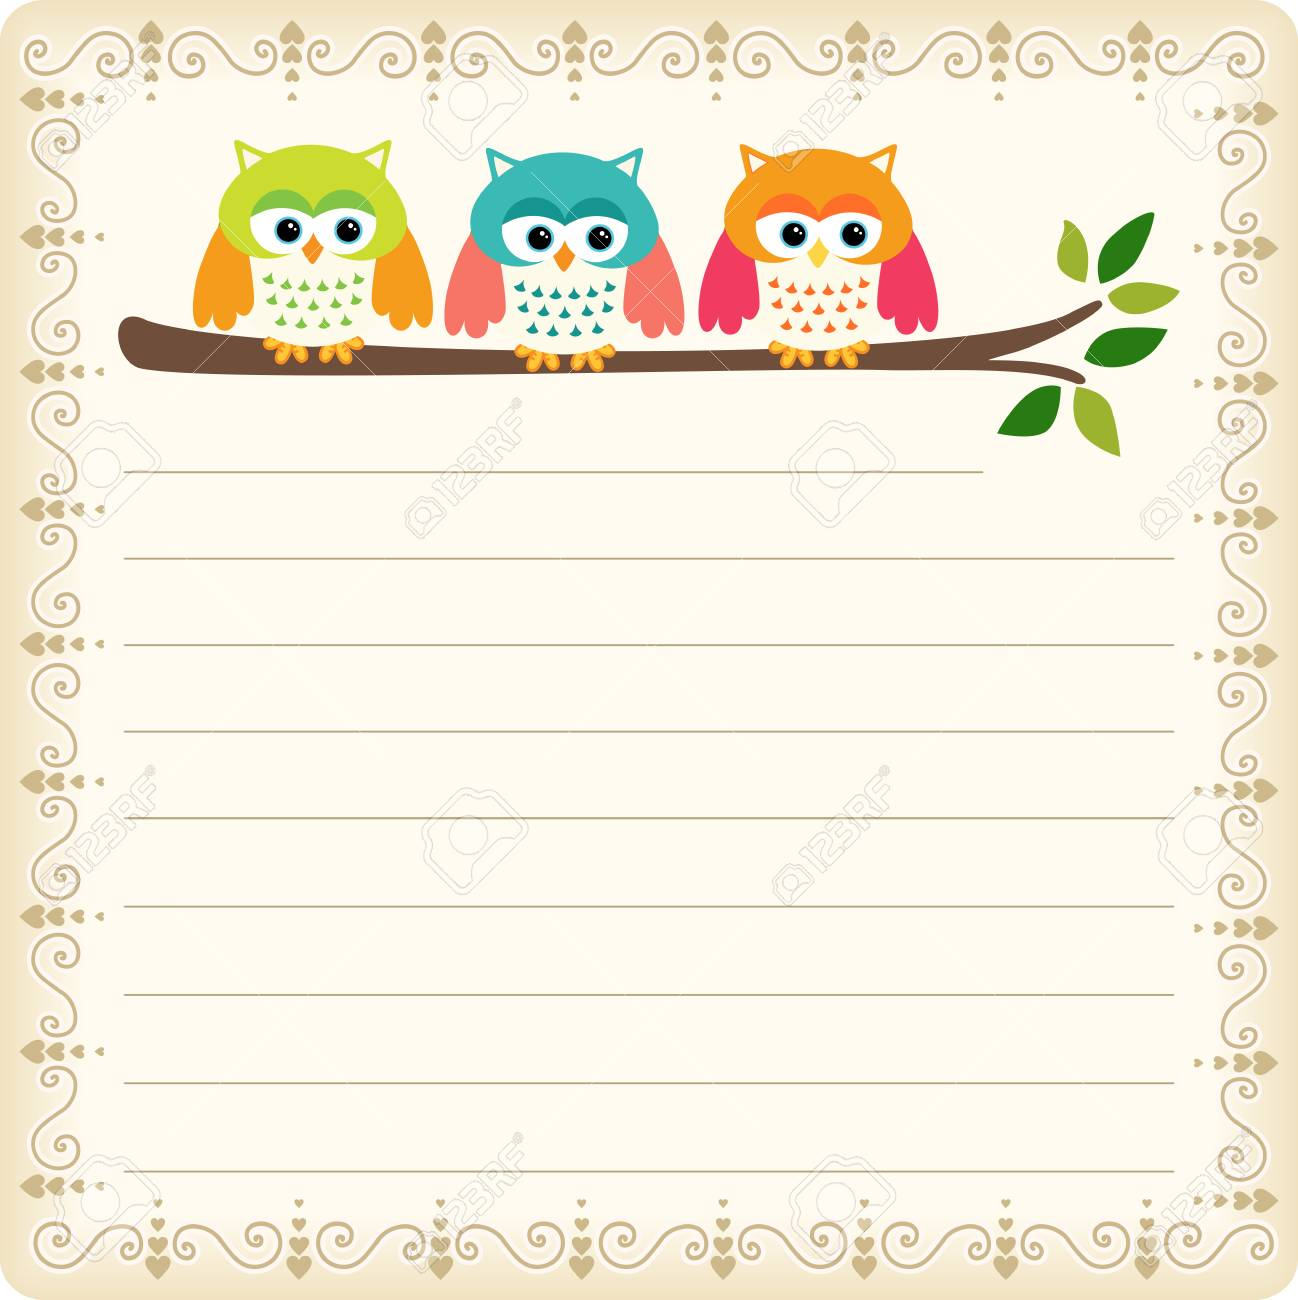 Three Owls Blank Template Royalty Free Cliparts Vectors